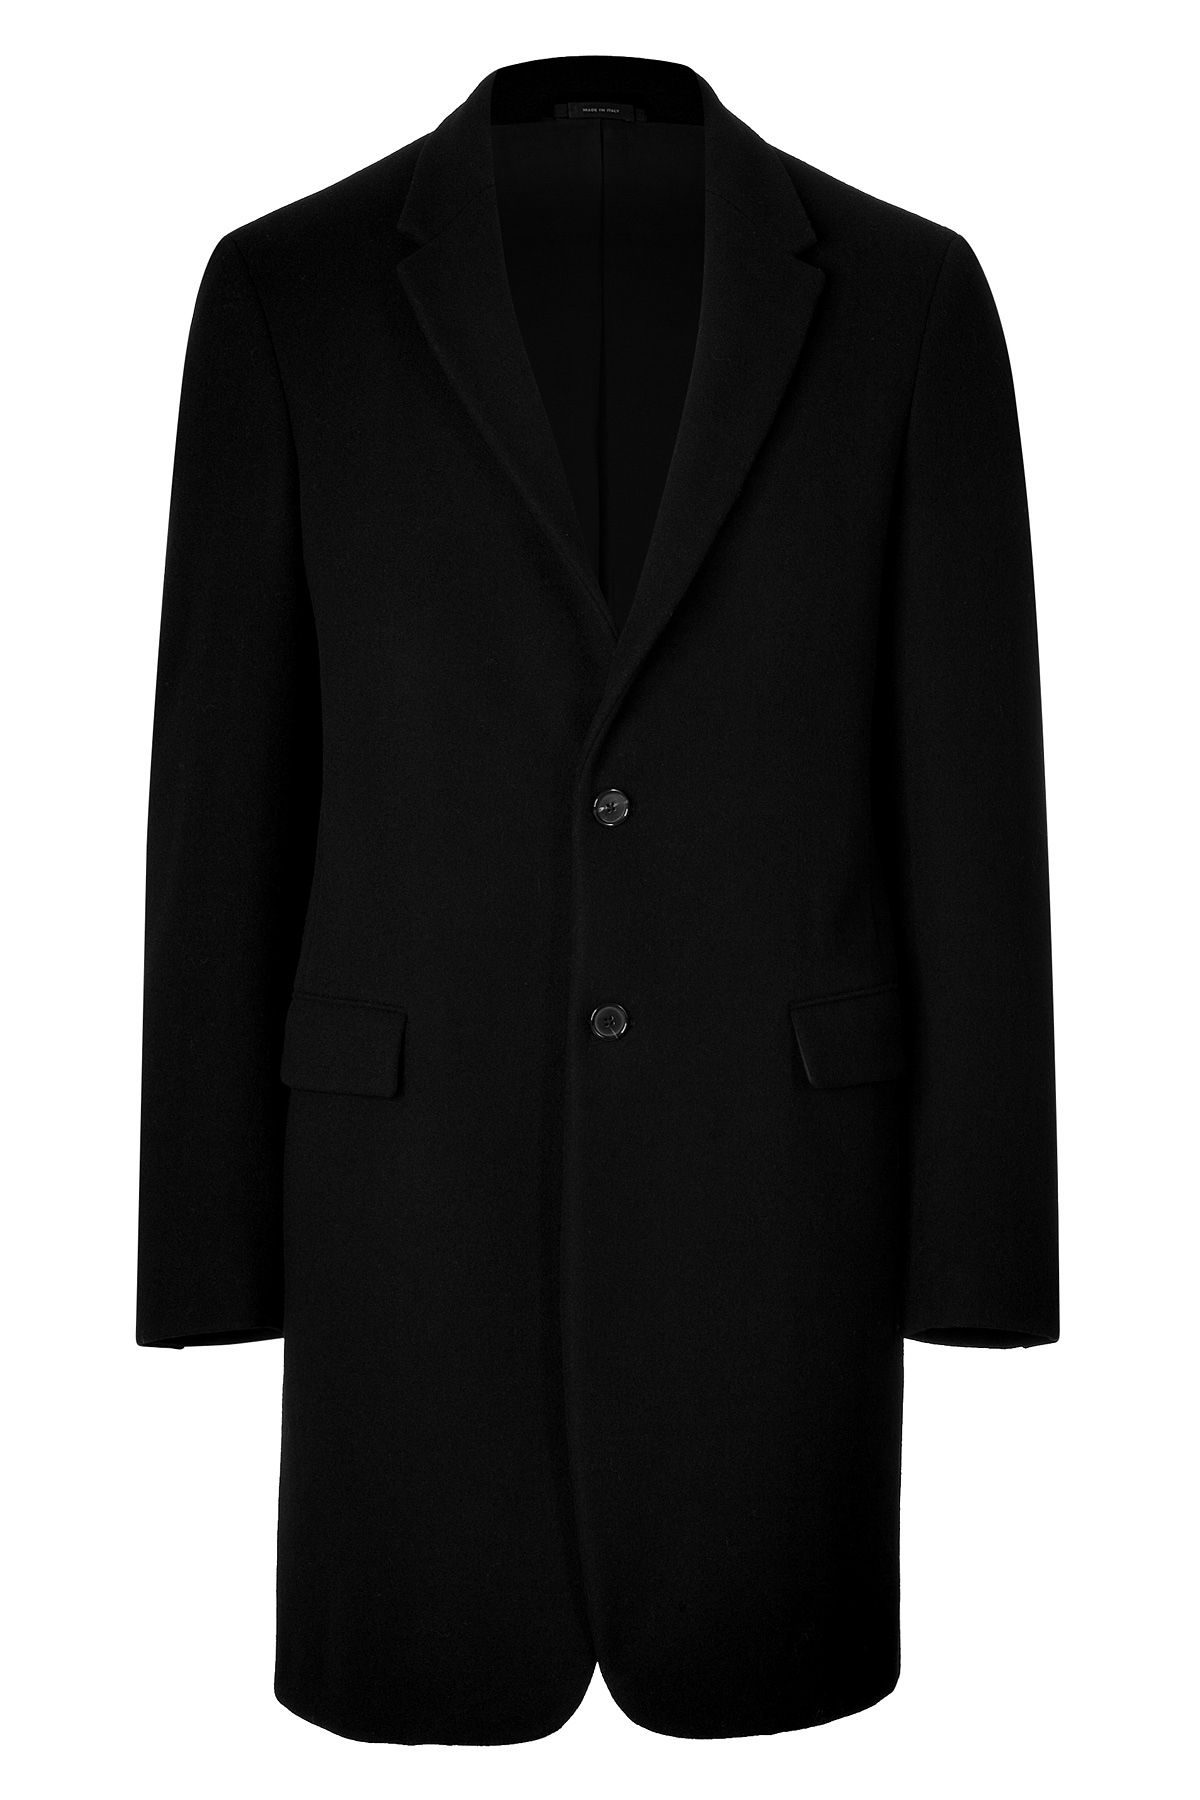 Jil sander Wool Coat in Black for Men | Lyst